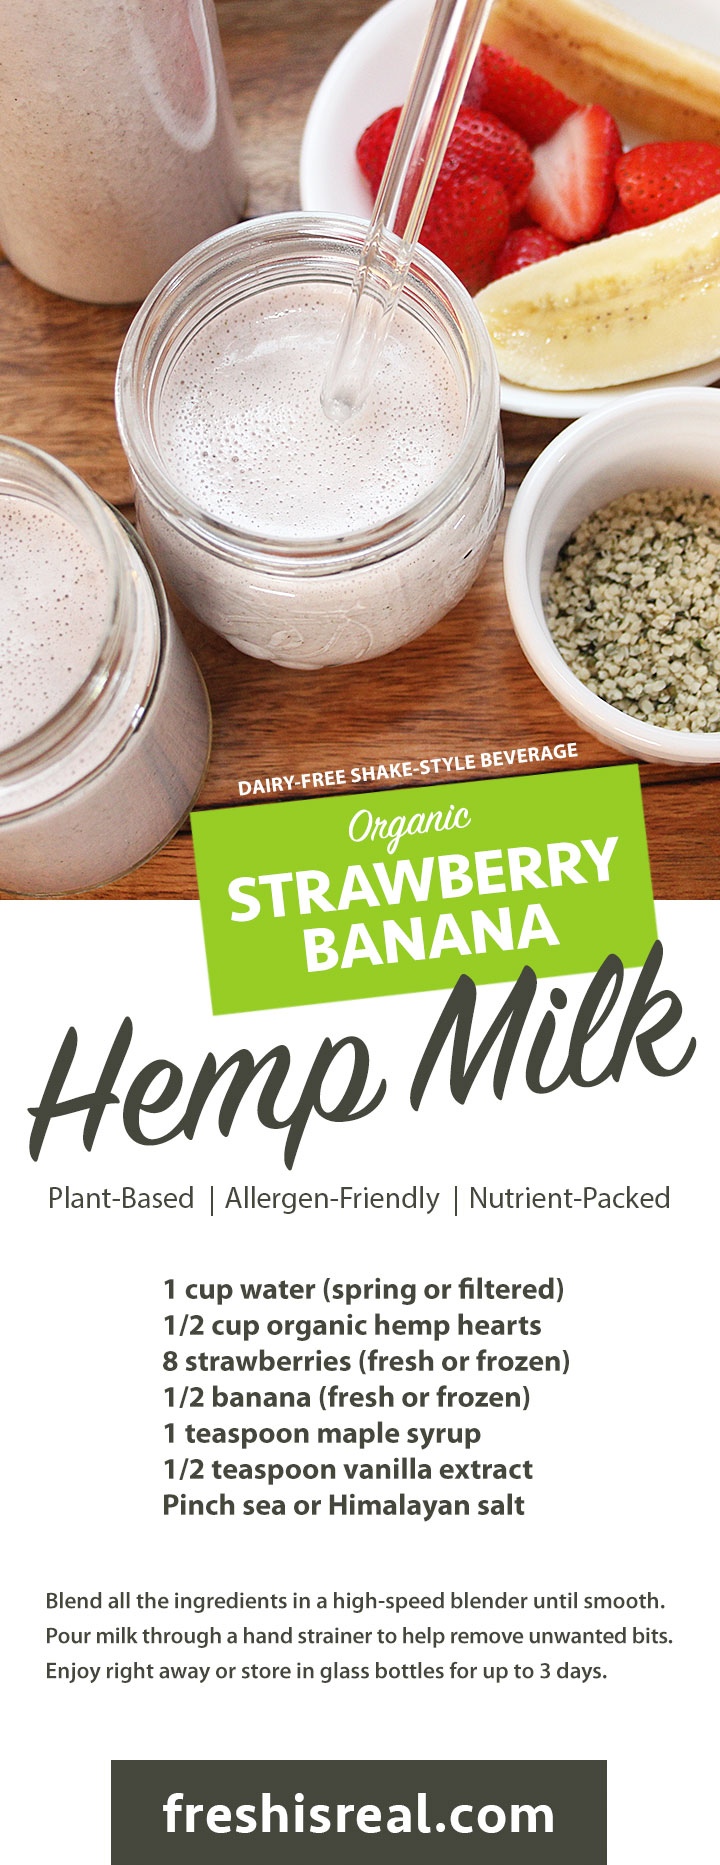 Quick 7-ingredient Vegan Strawberry Banana Hemp Milk will impress you with its shake-style creaminess! An excellent plant-based beverage to boost your intake of protein, fibre, and omegas. Chantal | freshisreal.com